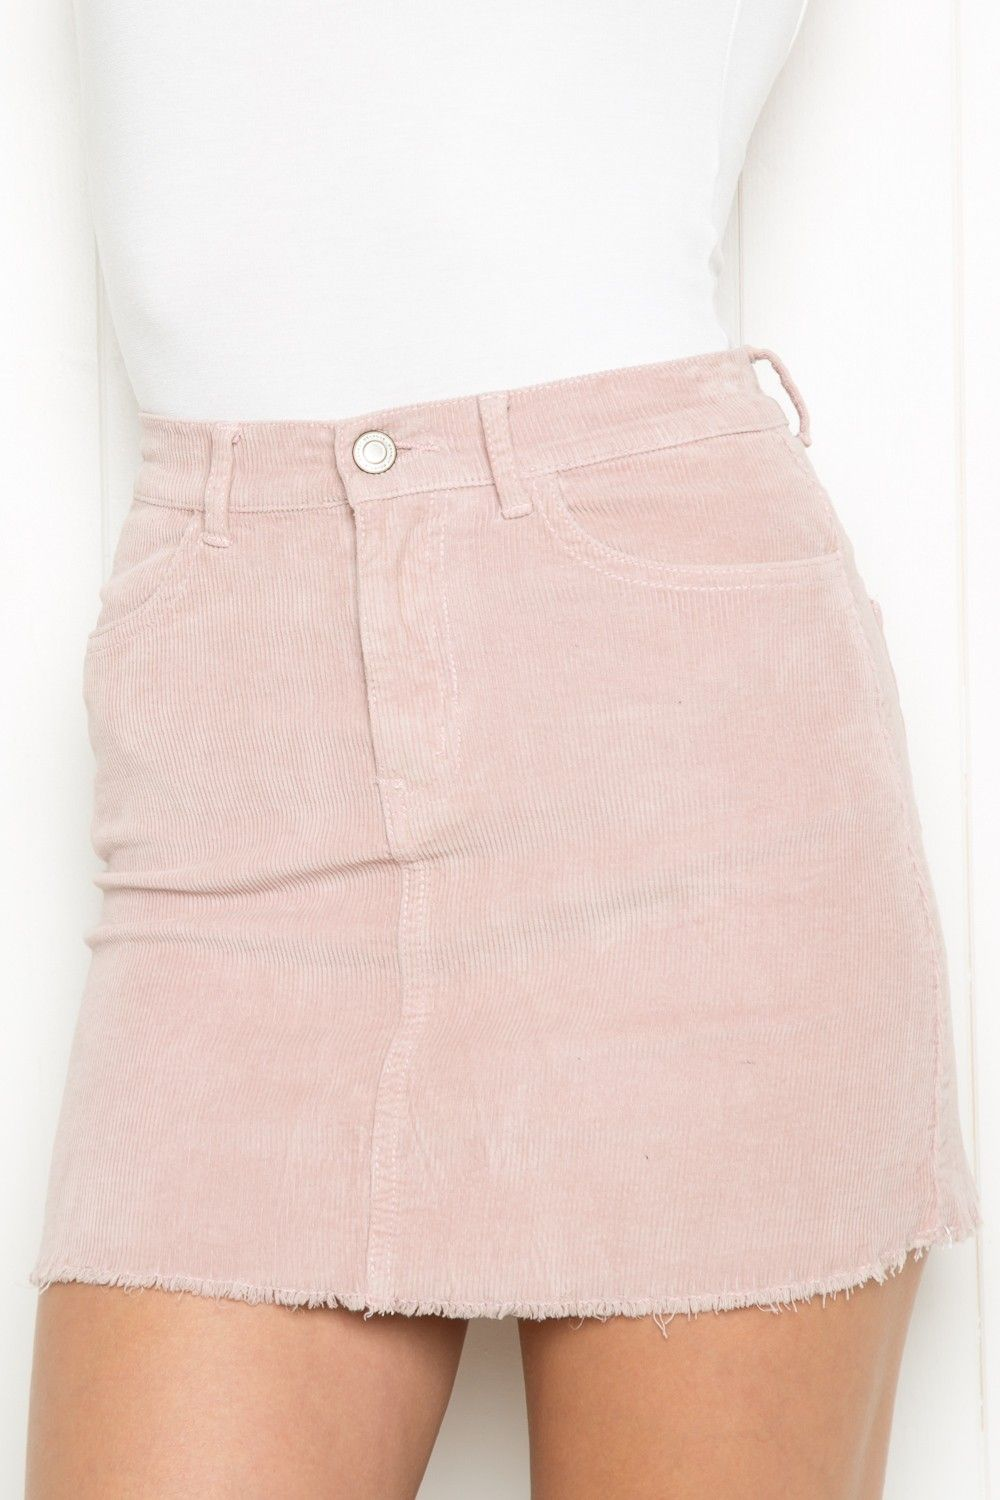 93d53c95a3 Welcome to Brandy Melville USA | closet love | Corduroy skirt ...